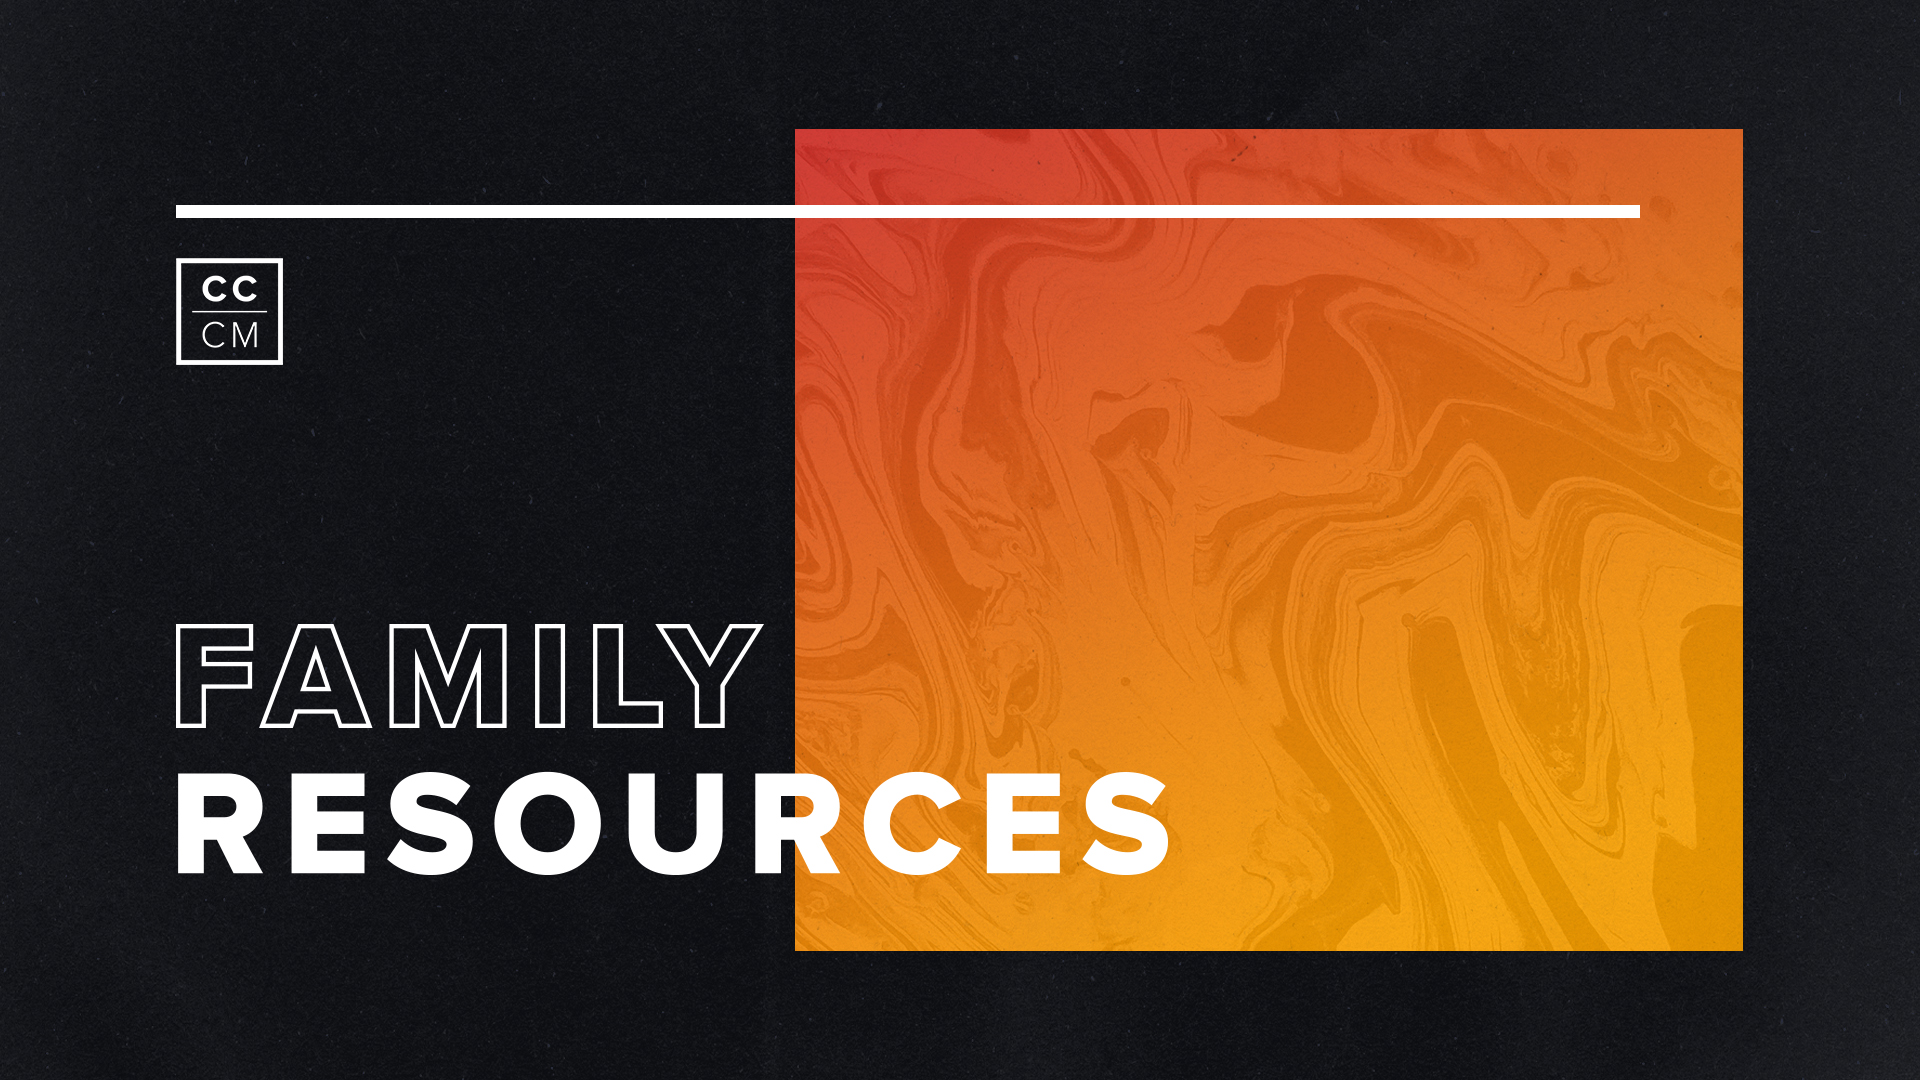 FamilyResources 1920x1080